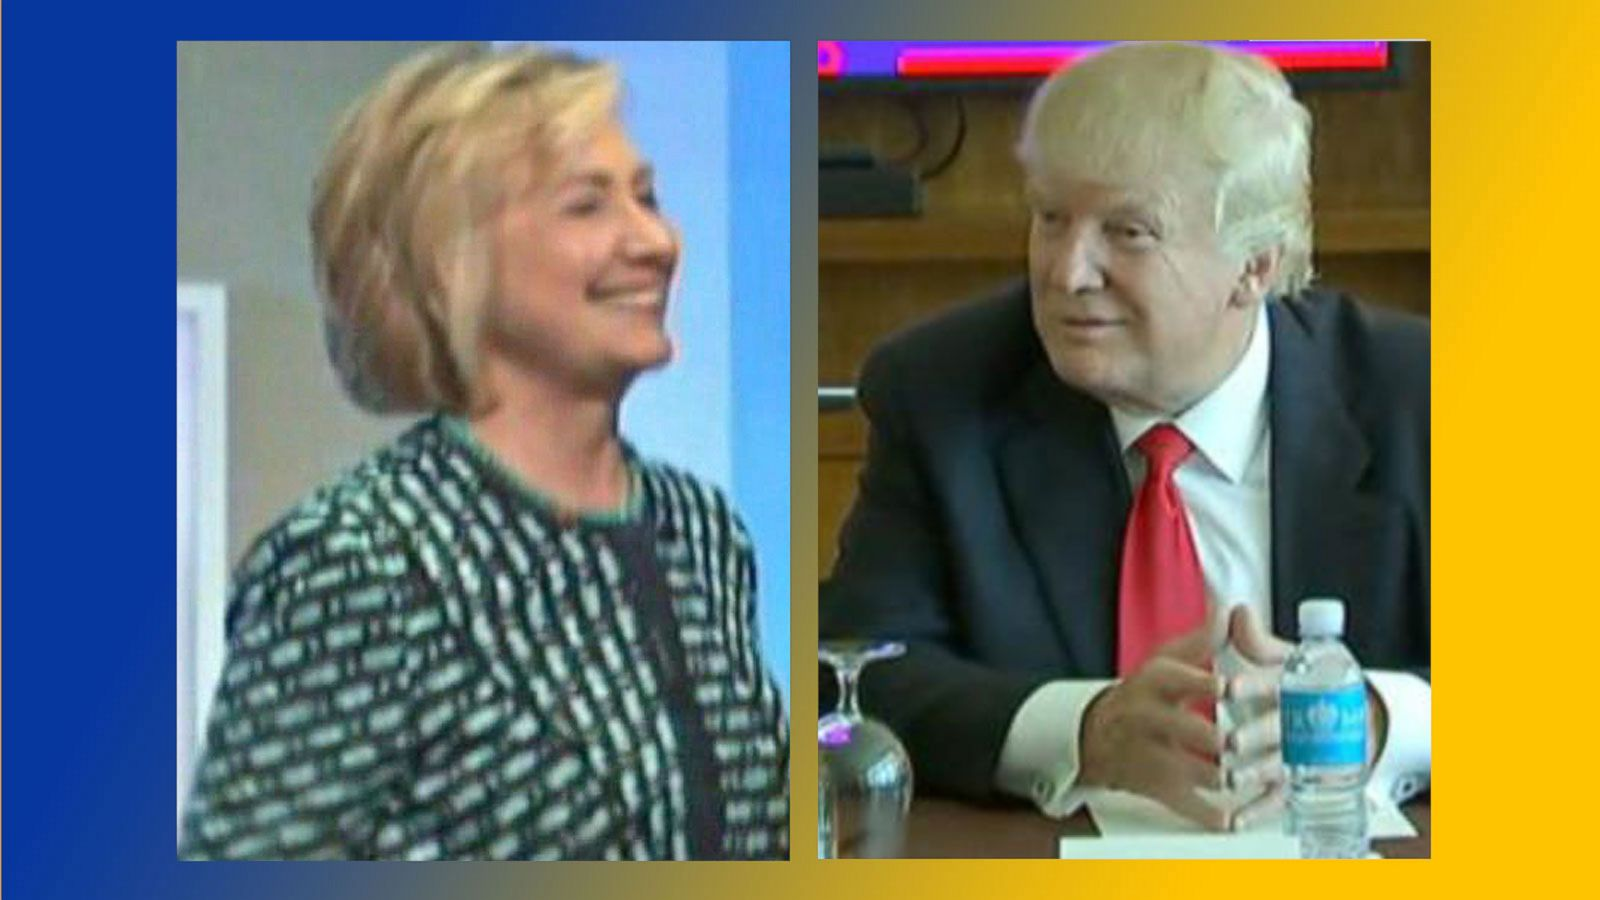 VIDEO: New Issues Face Hillary Clinton and Donald Trump